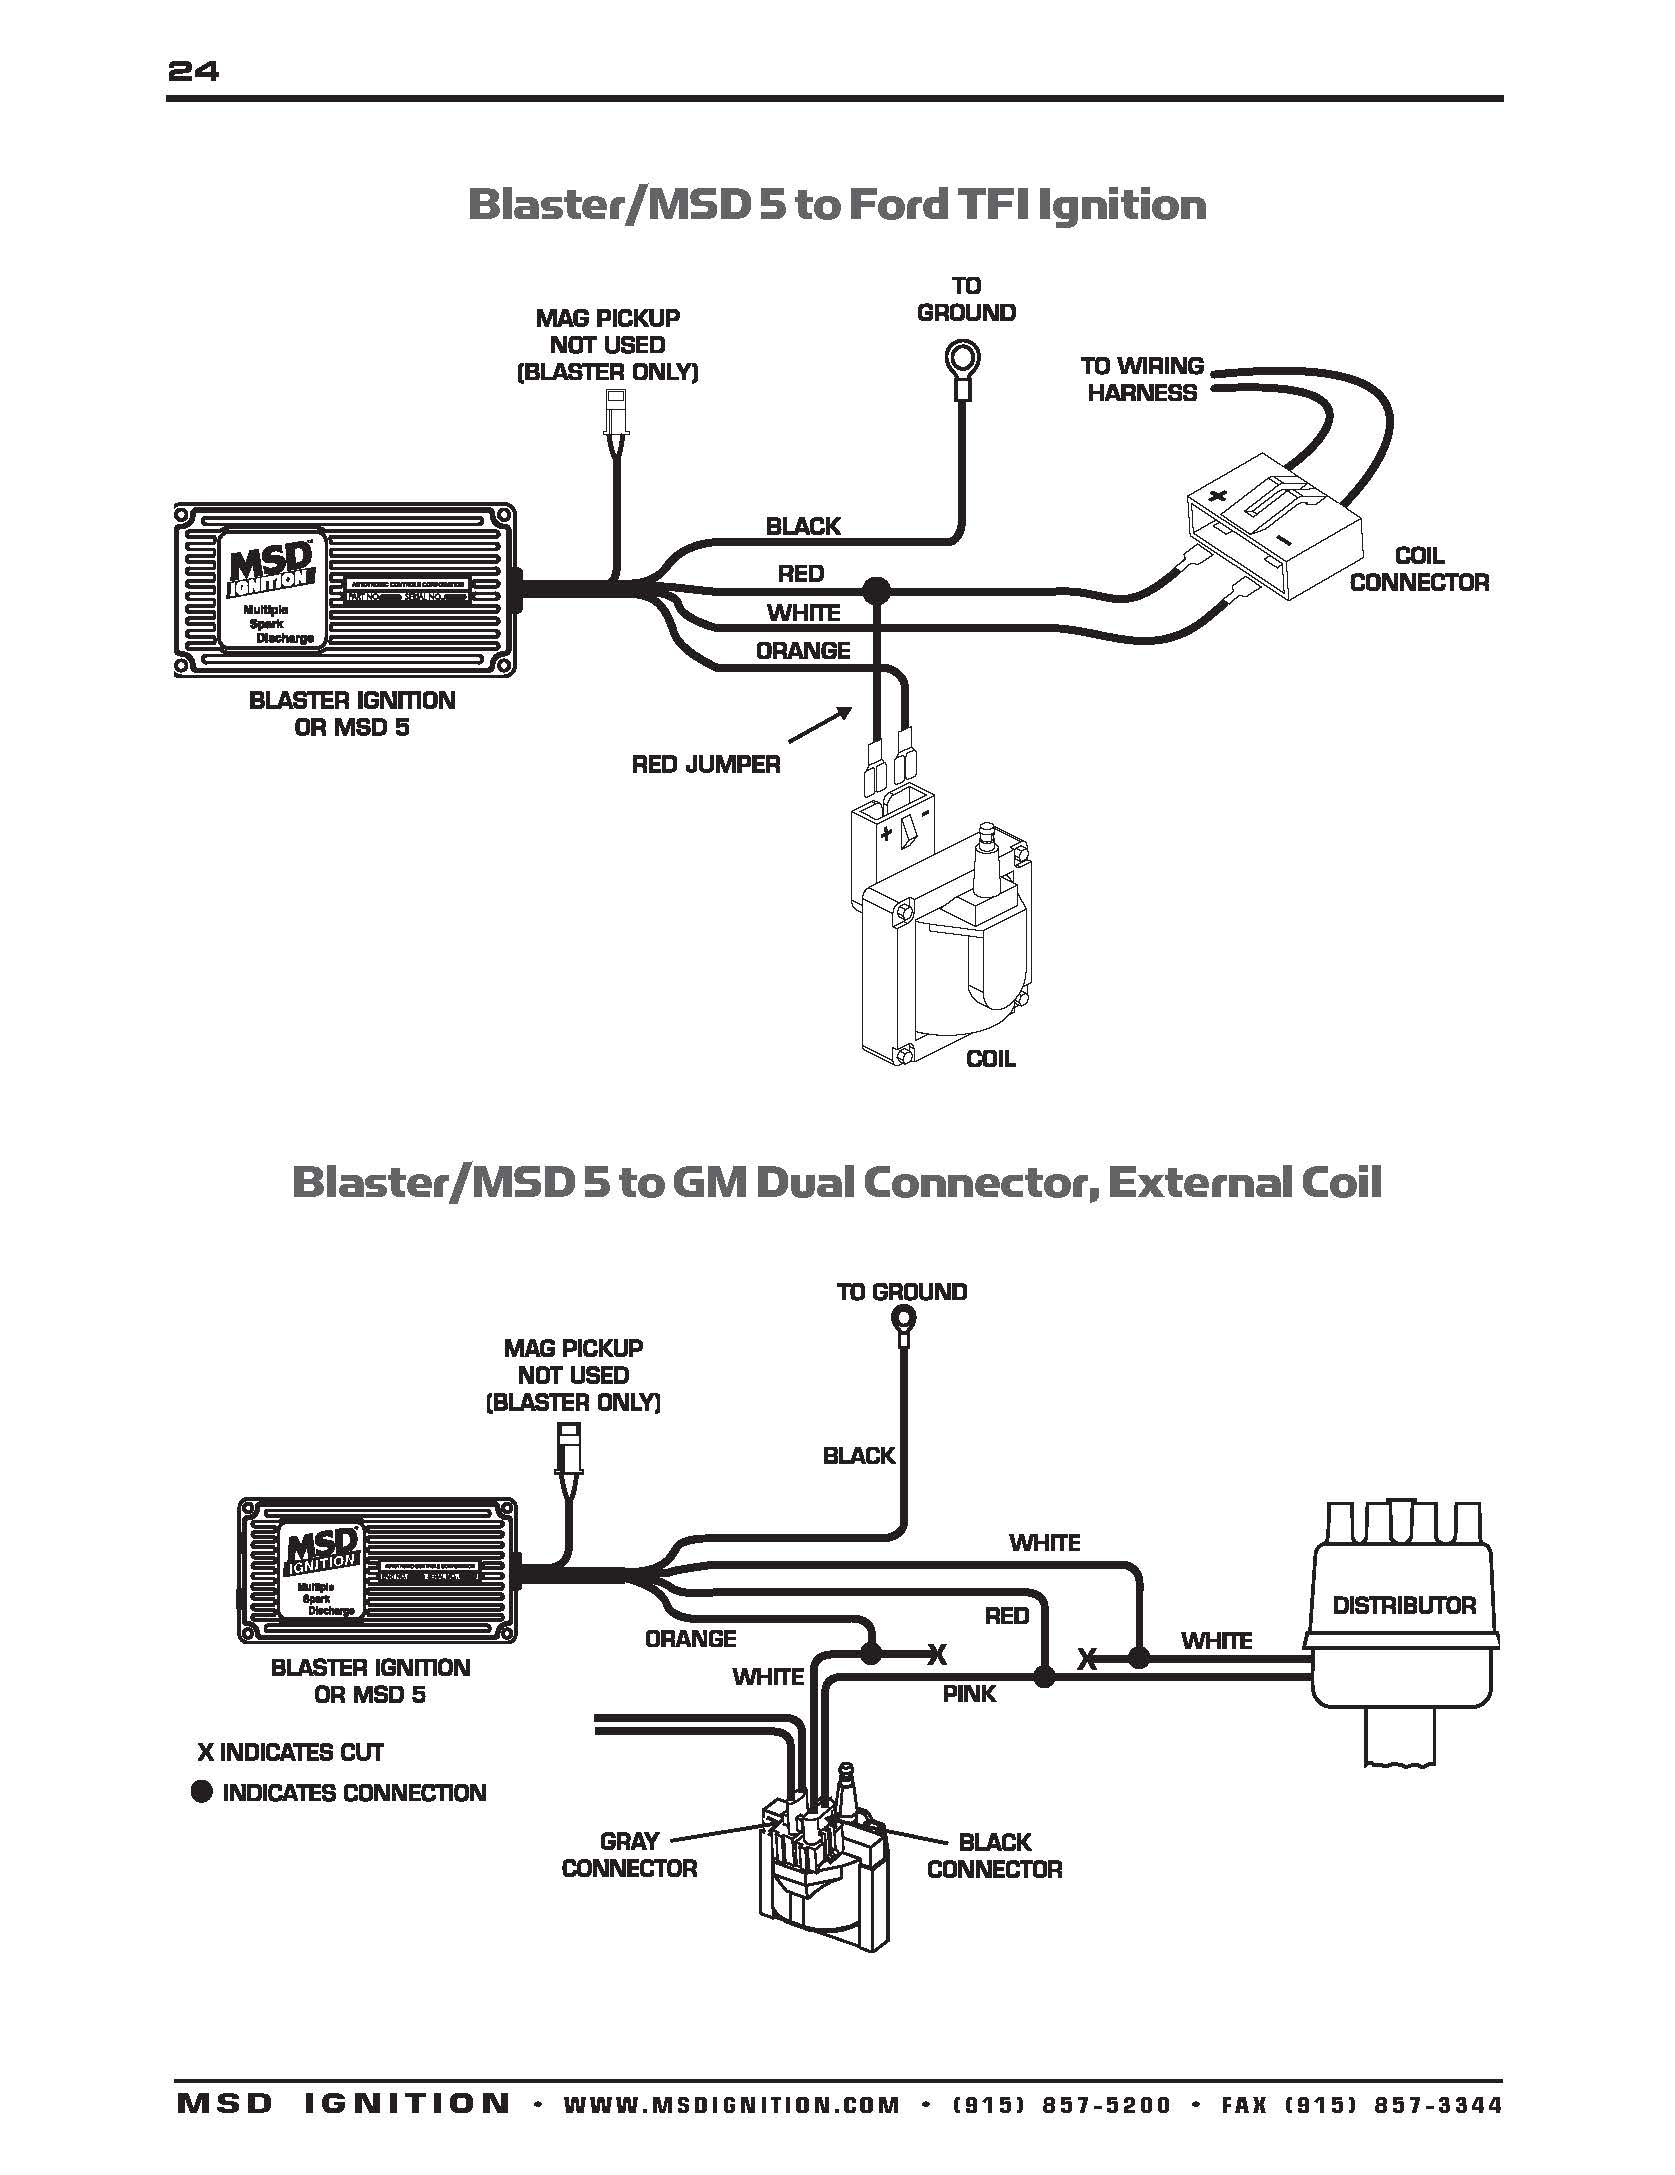 Msd 5 Wiring Diagram - Wiring Diagrams Hubs - Msd Ignition Wiring Diagram